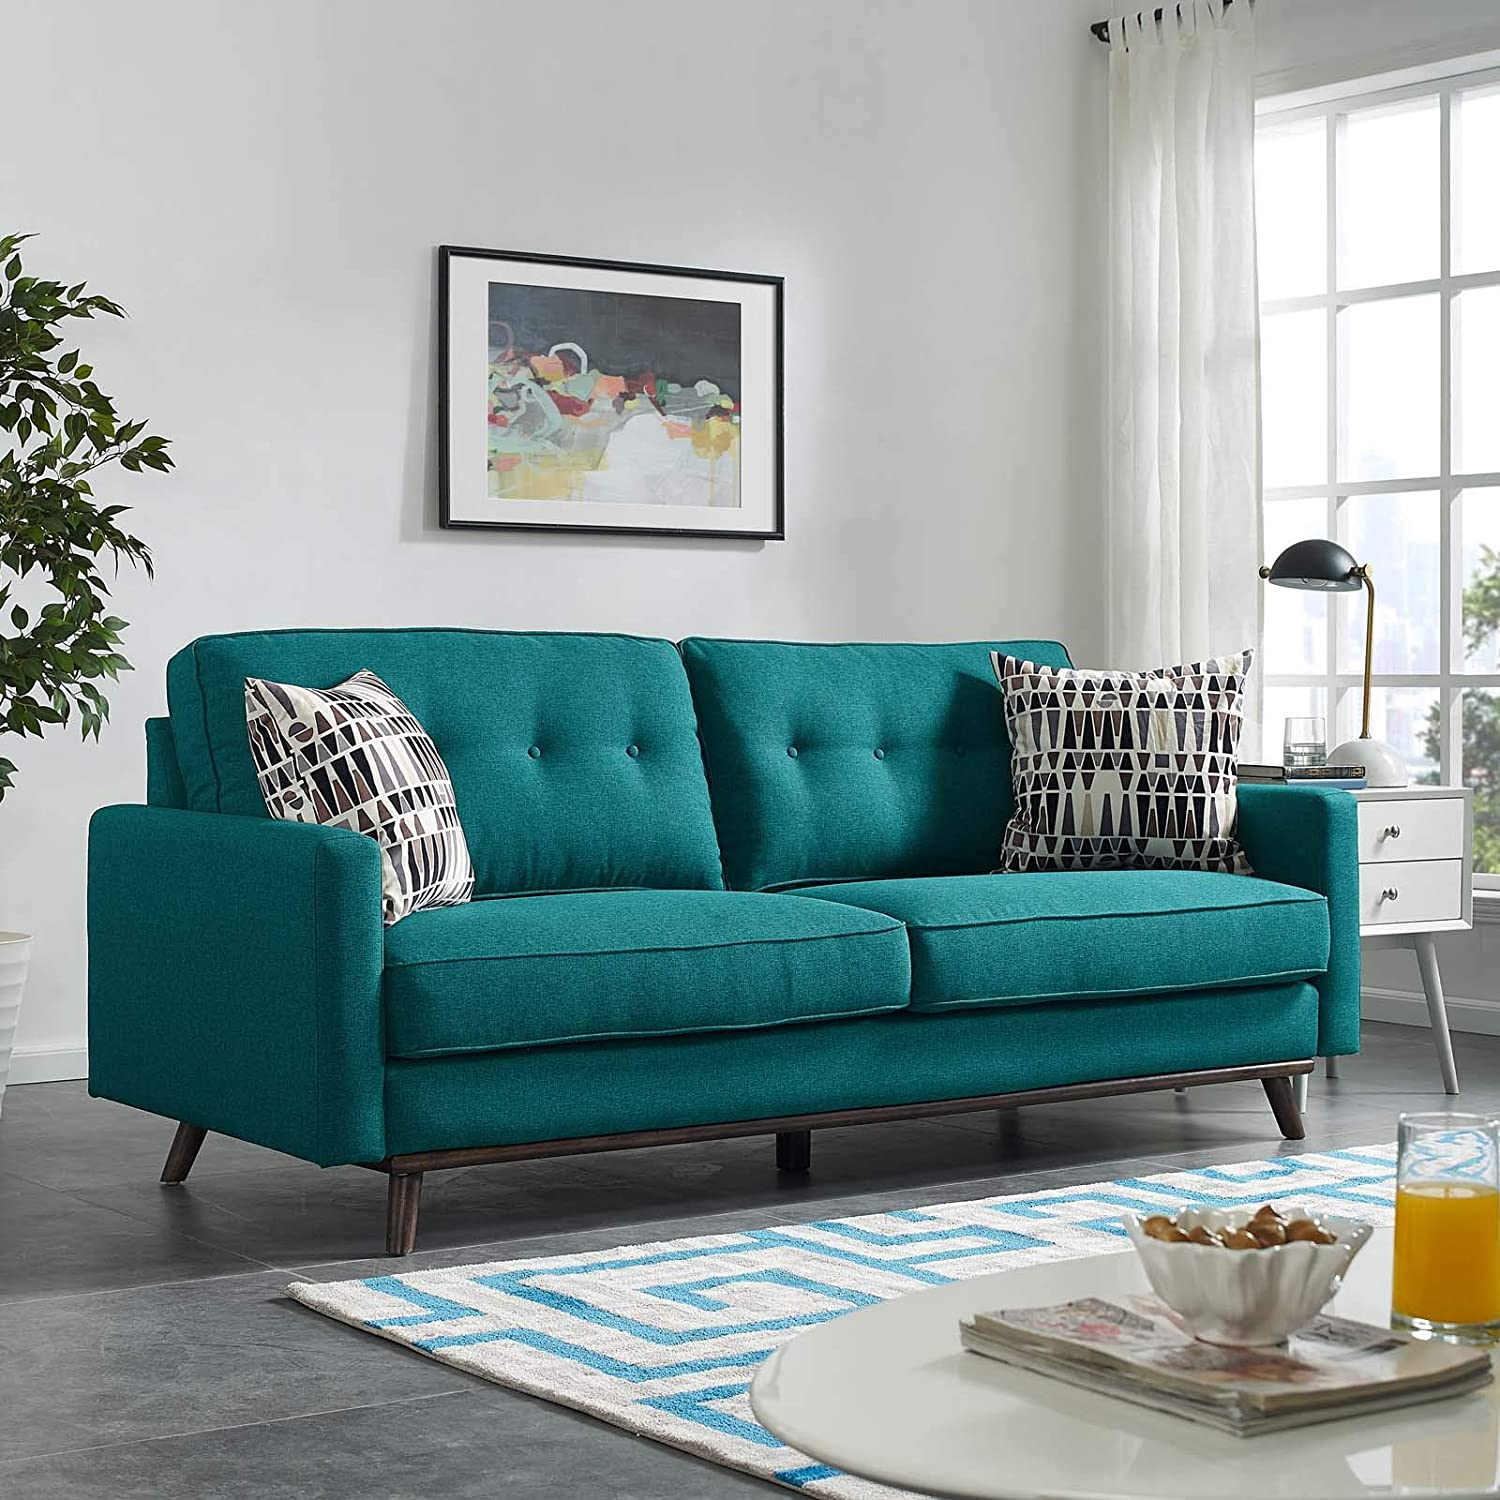 Modway Prompt Mid-Century Modern Fabric Upholstered Tufted Sofa In Teal